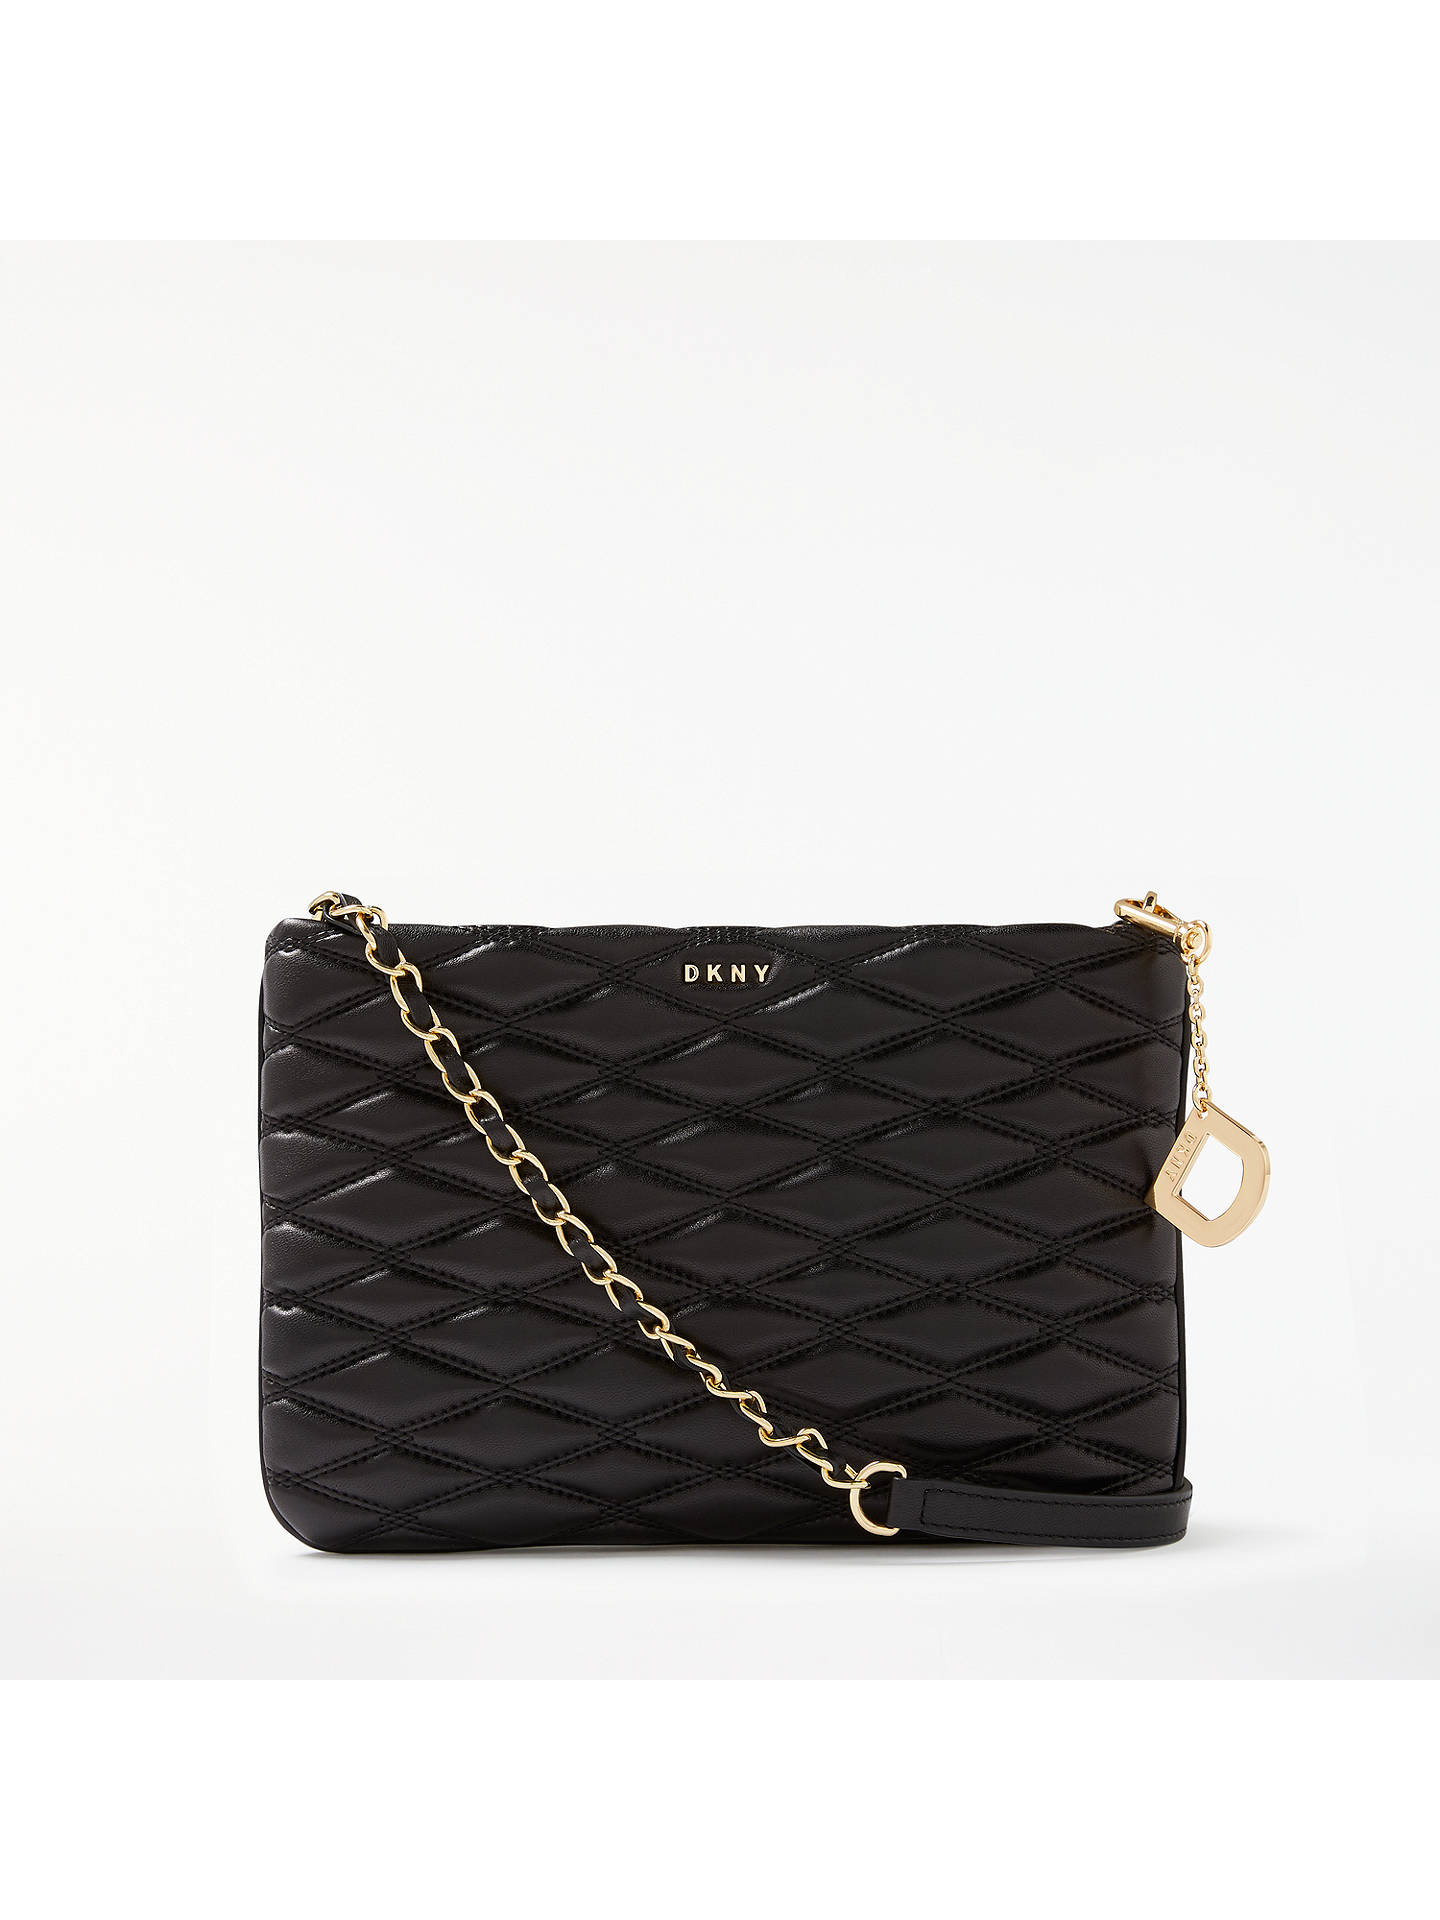 Dkny Na Leather Quilted Cross Body Bag Black Online At Johnlewis